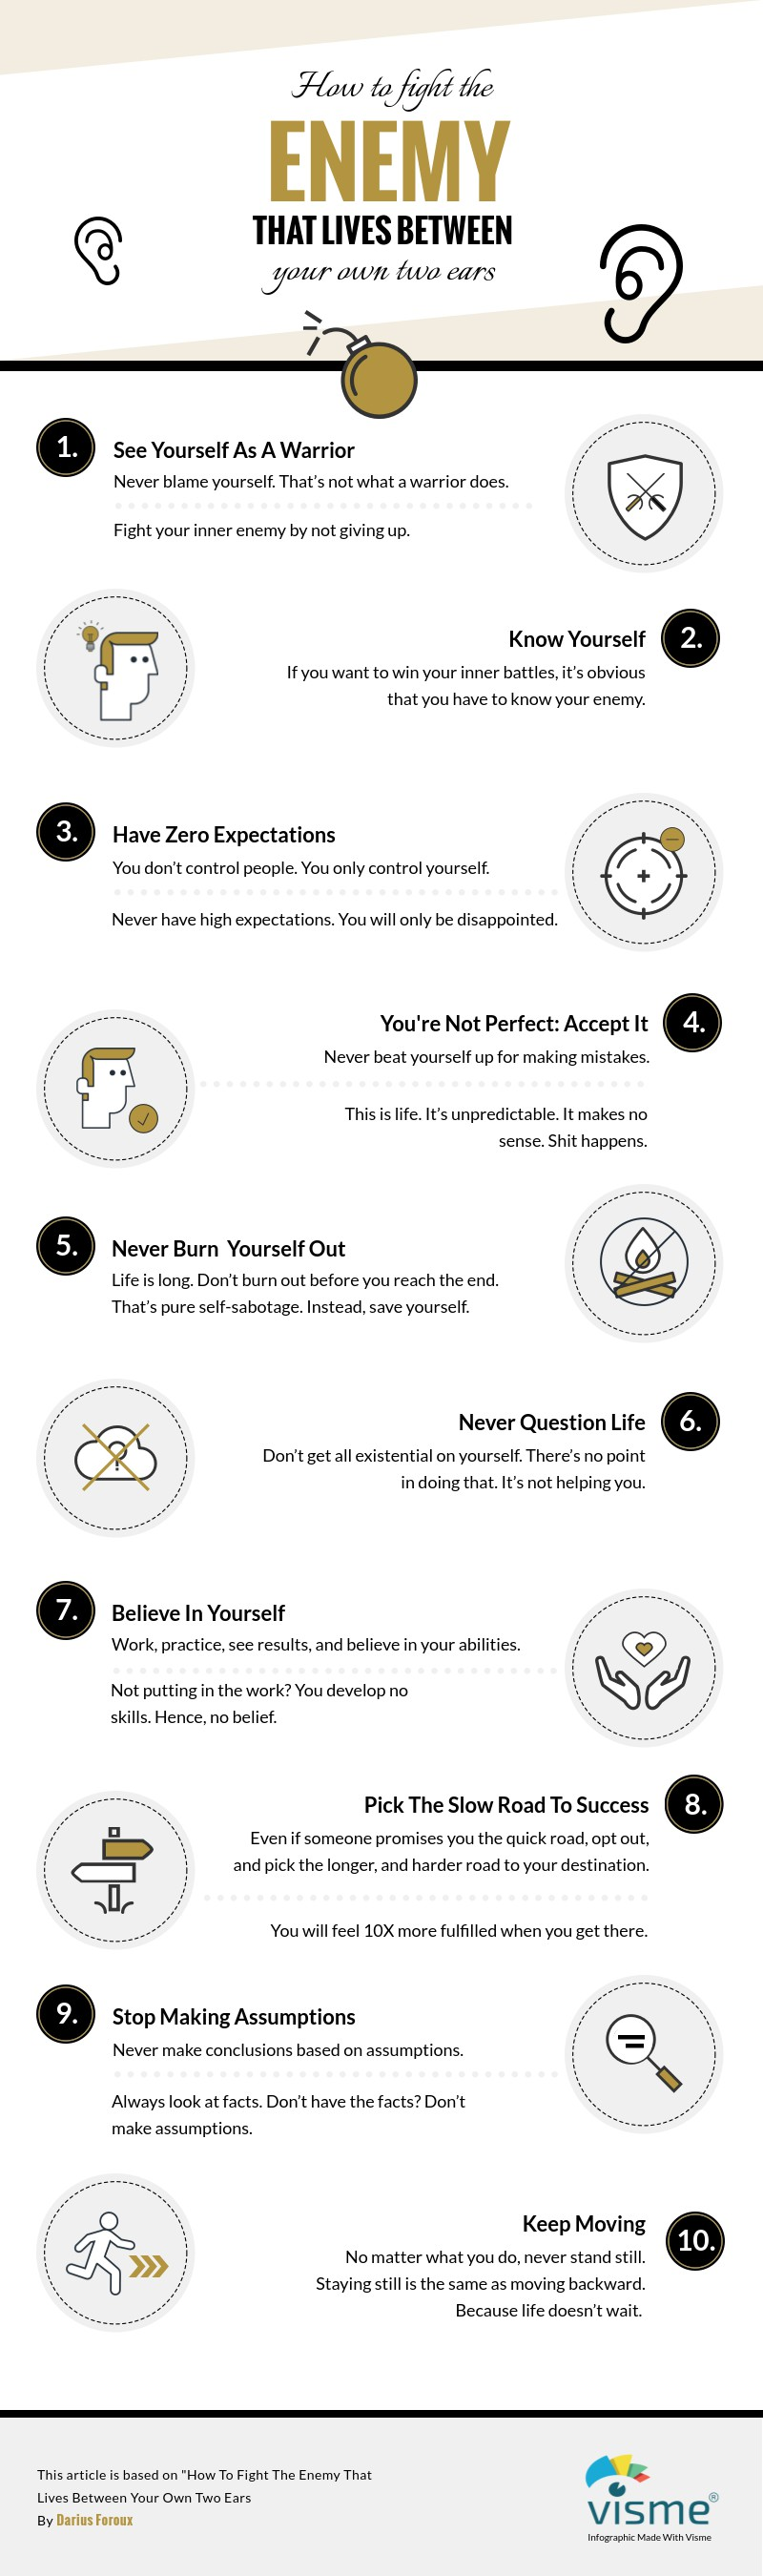 How To Fight The Enemy That Lives Between Your Own Two Ears [infographic]